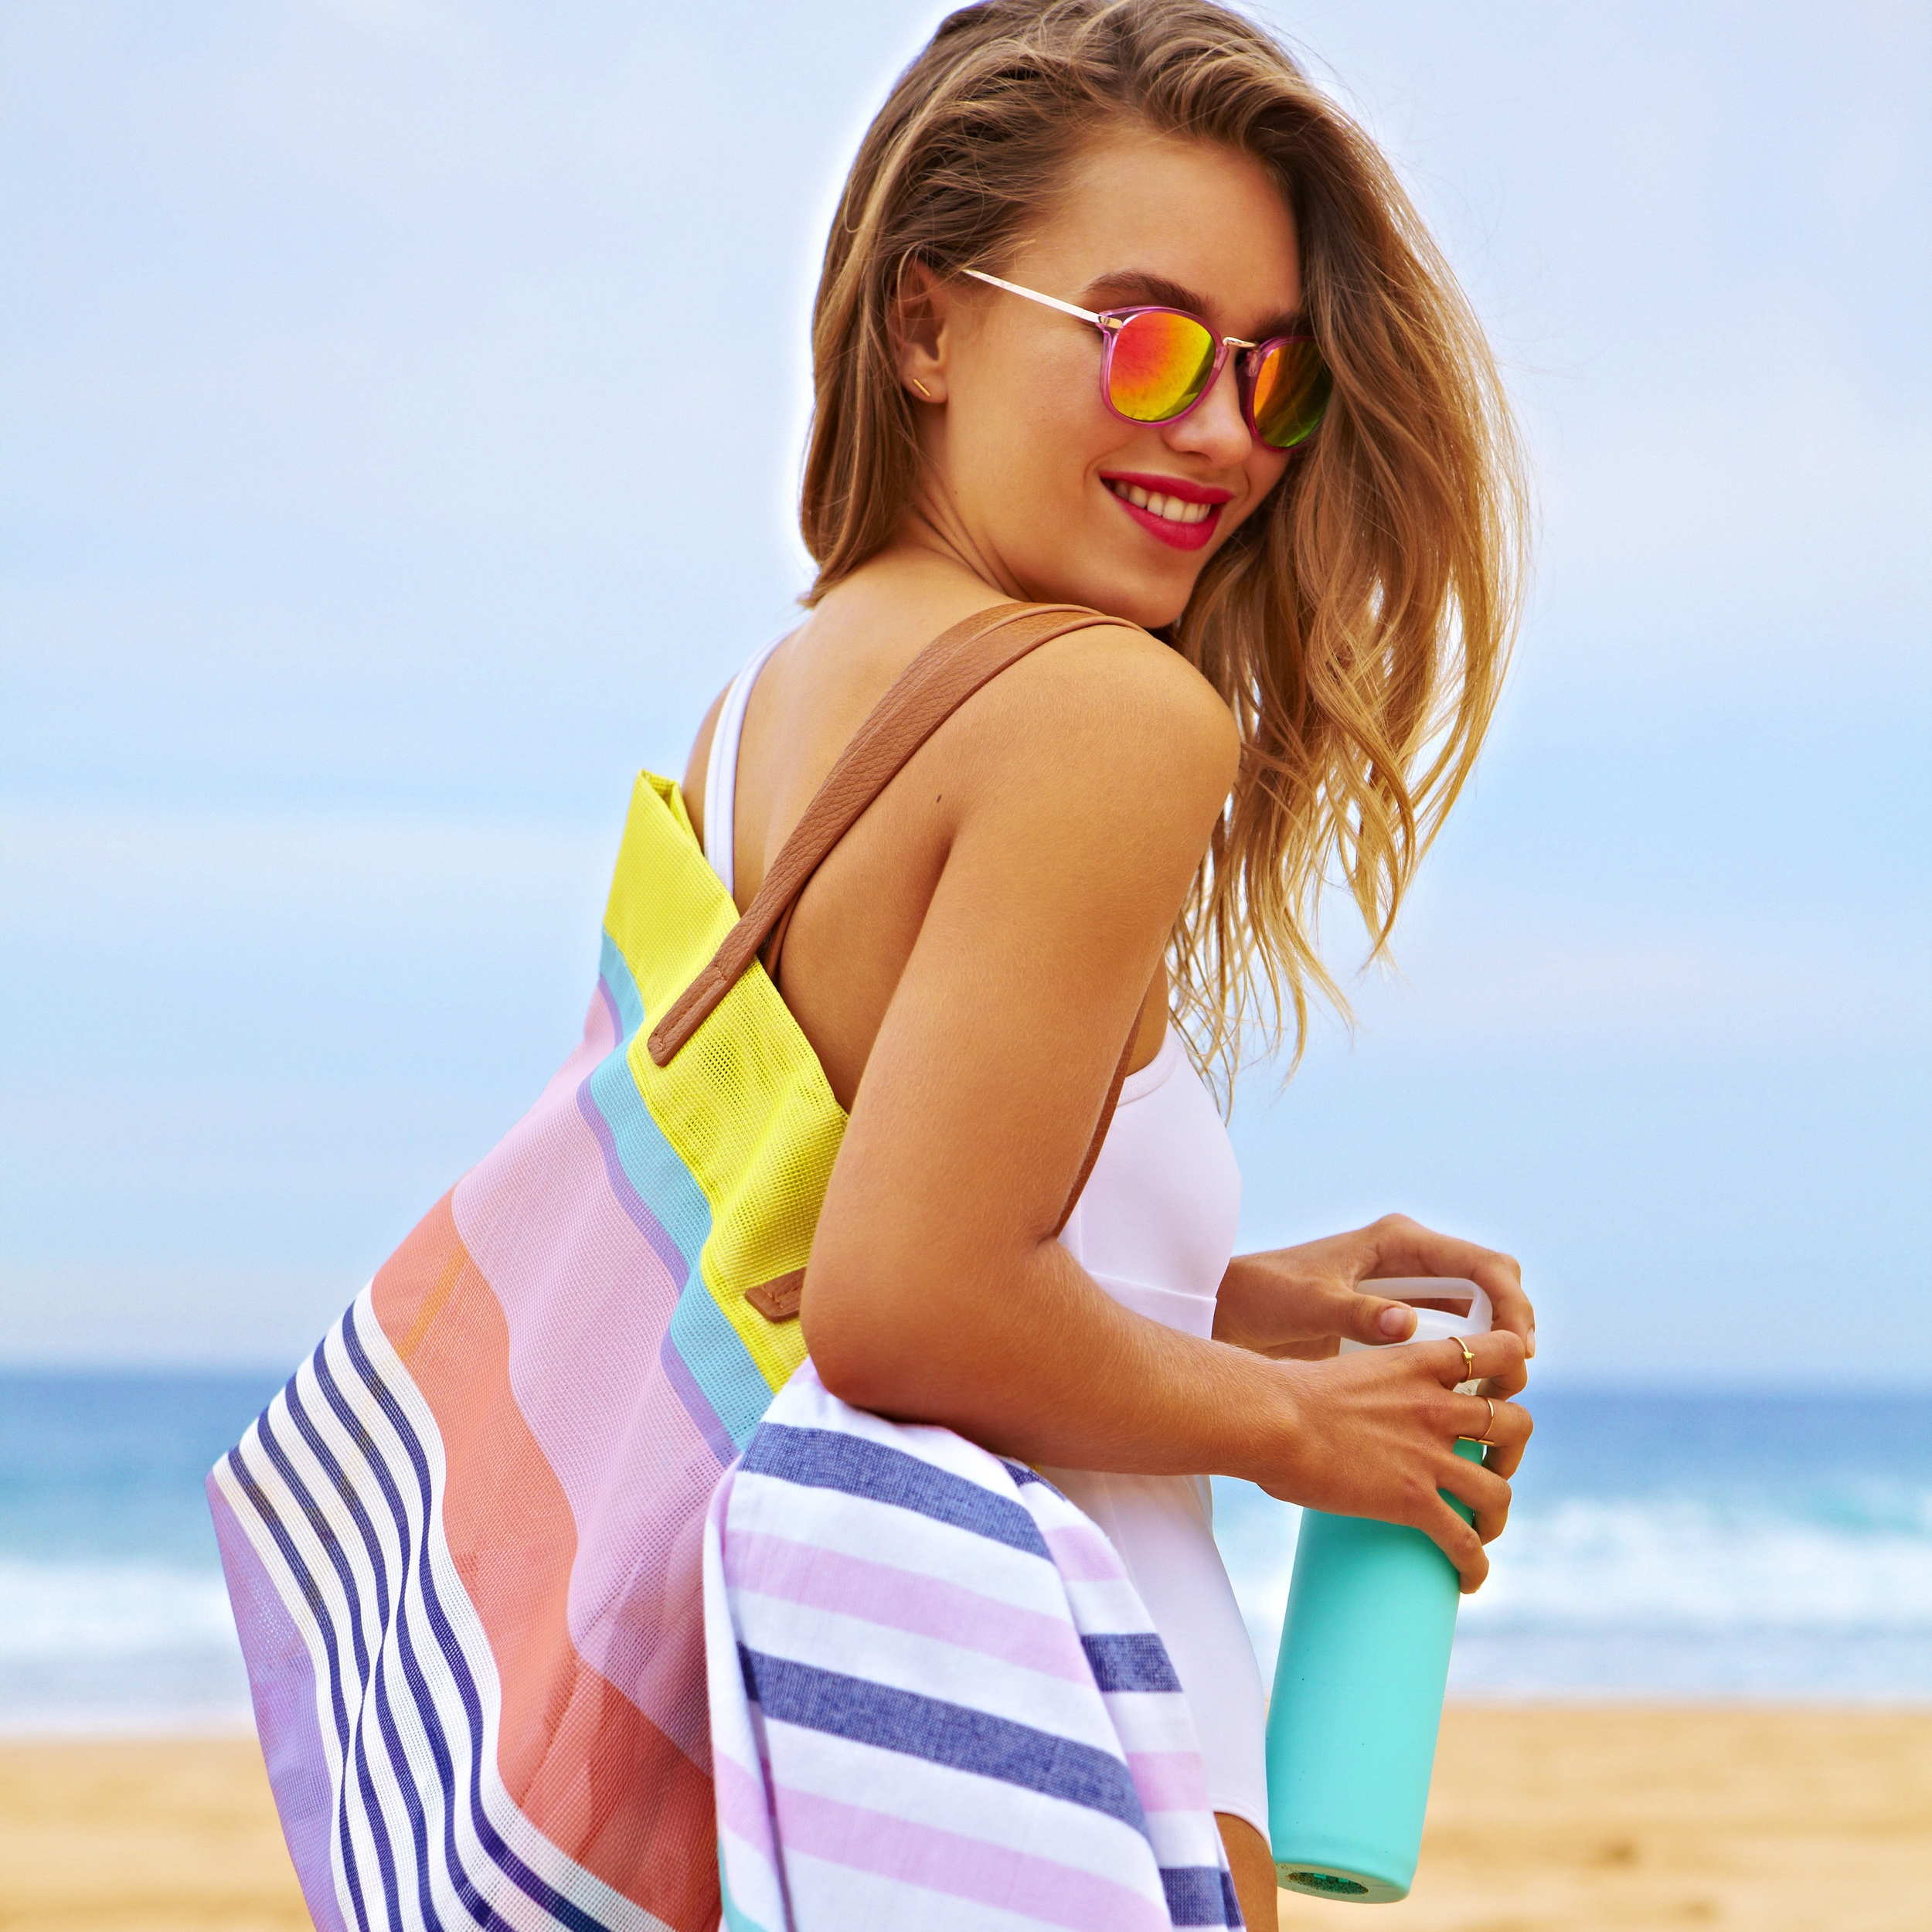 Colorful Totes and Towels   Because you need something to carry that rosé and something to sit on while sipping it, right?